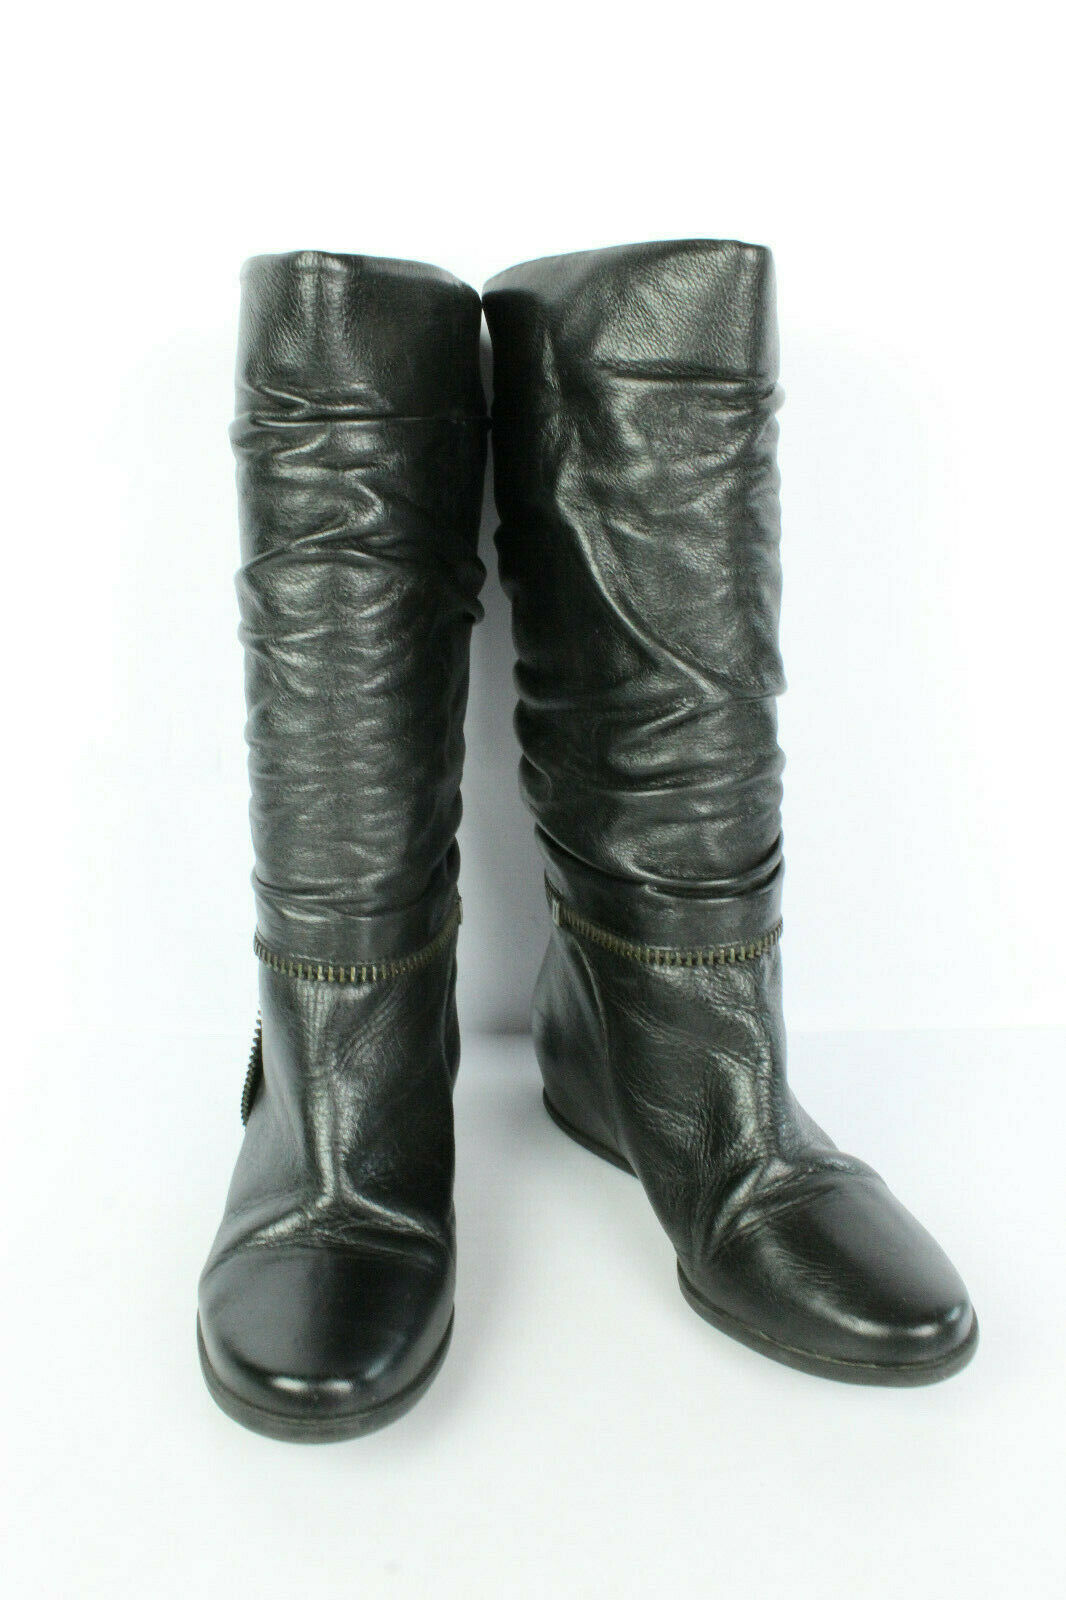 Vintage san marina boots black leather t 37 very good condition